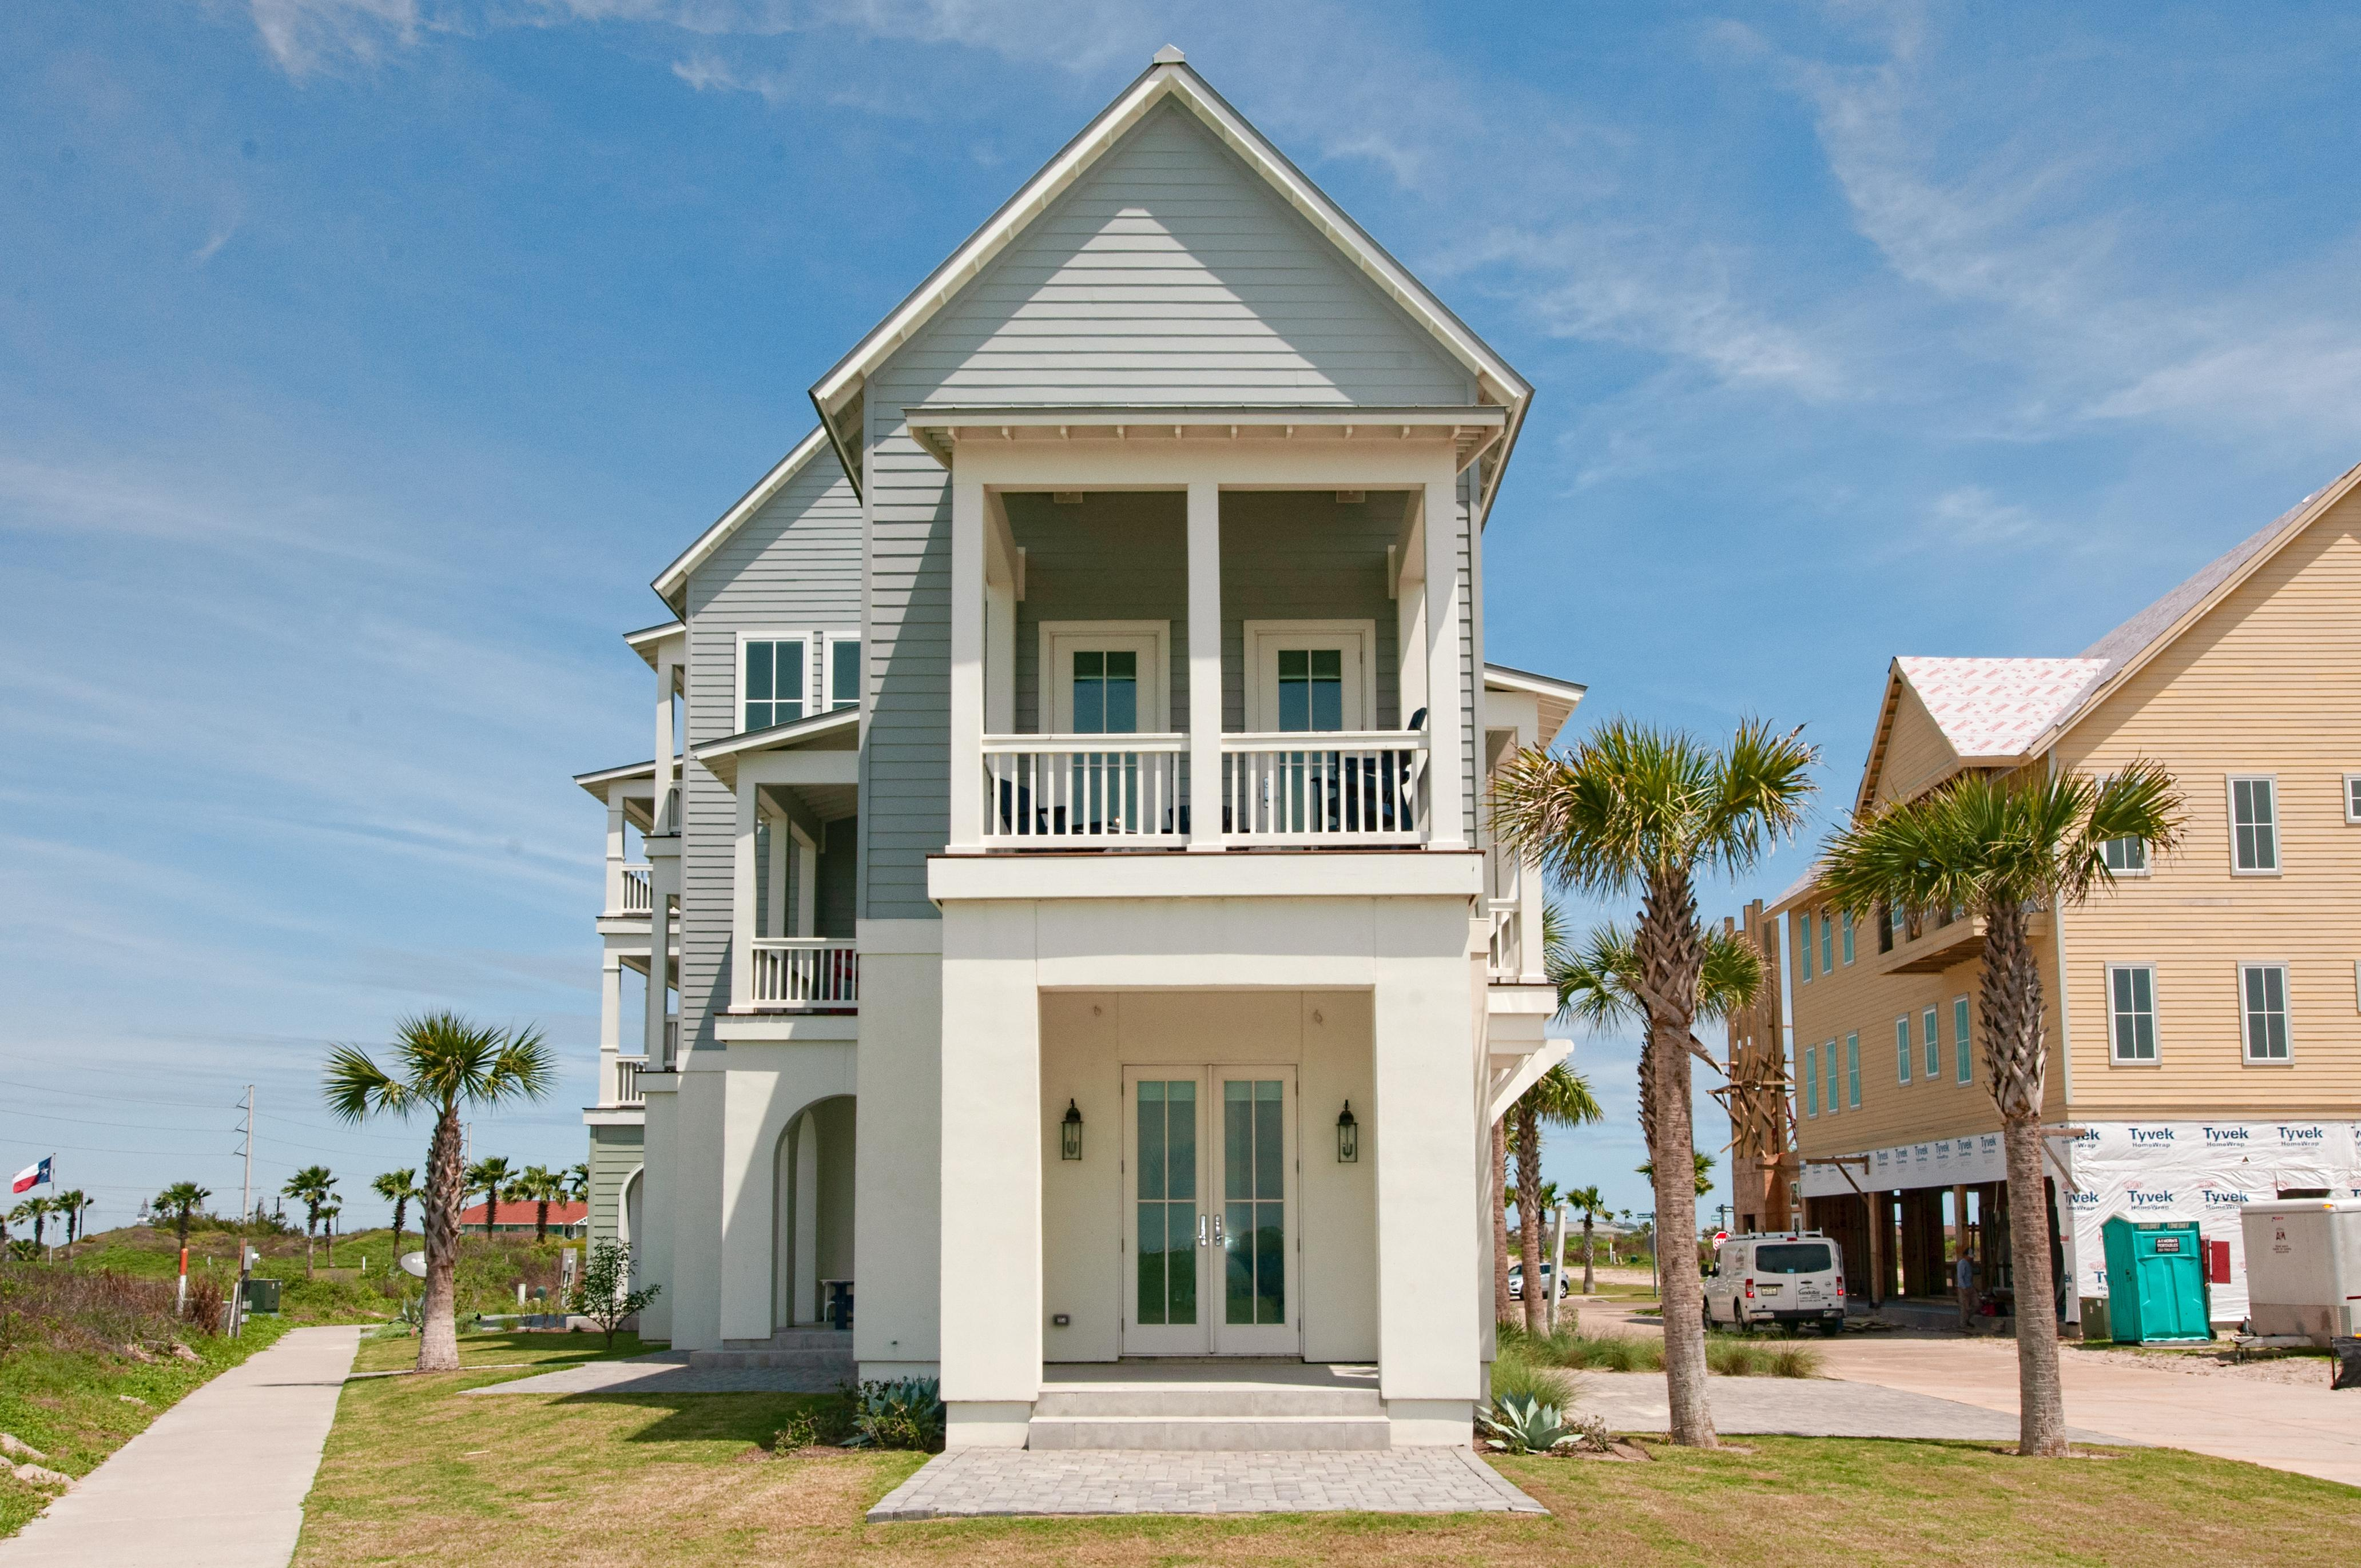 Welcome to Port Aransas! This house is professionally managed by TurnKey Vacation Rentals.